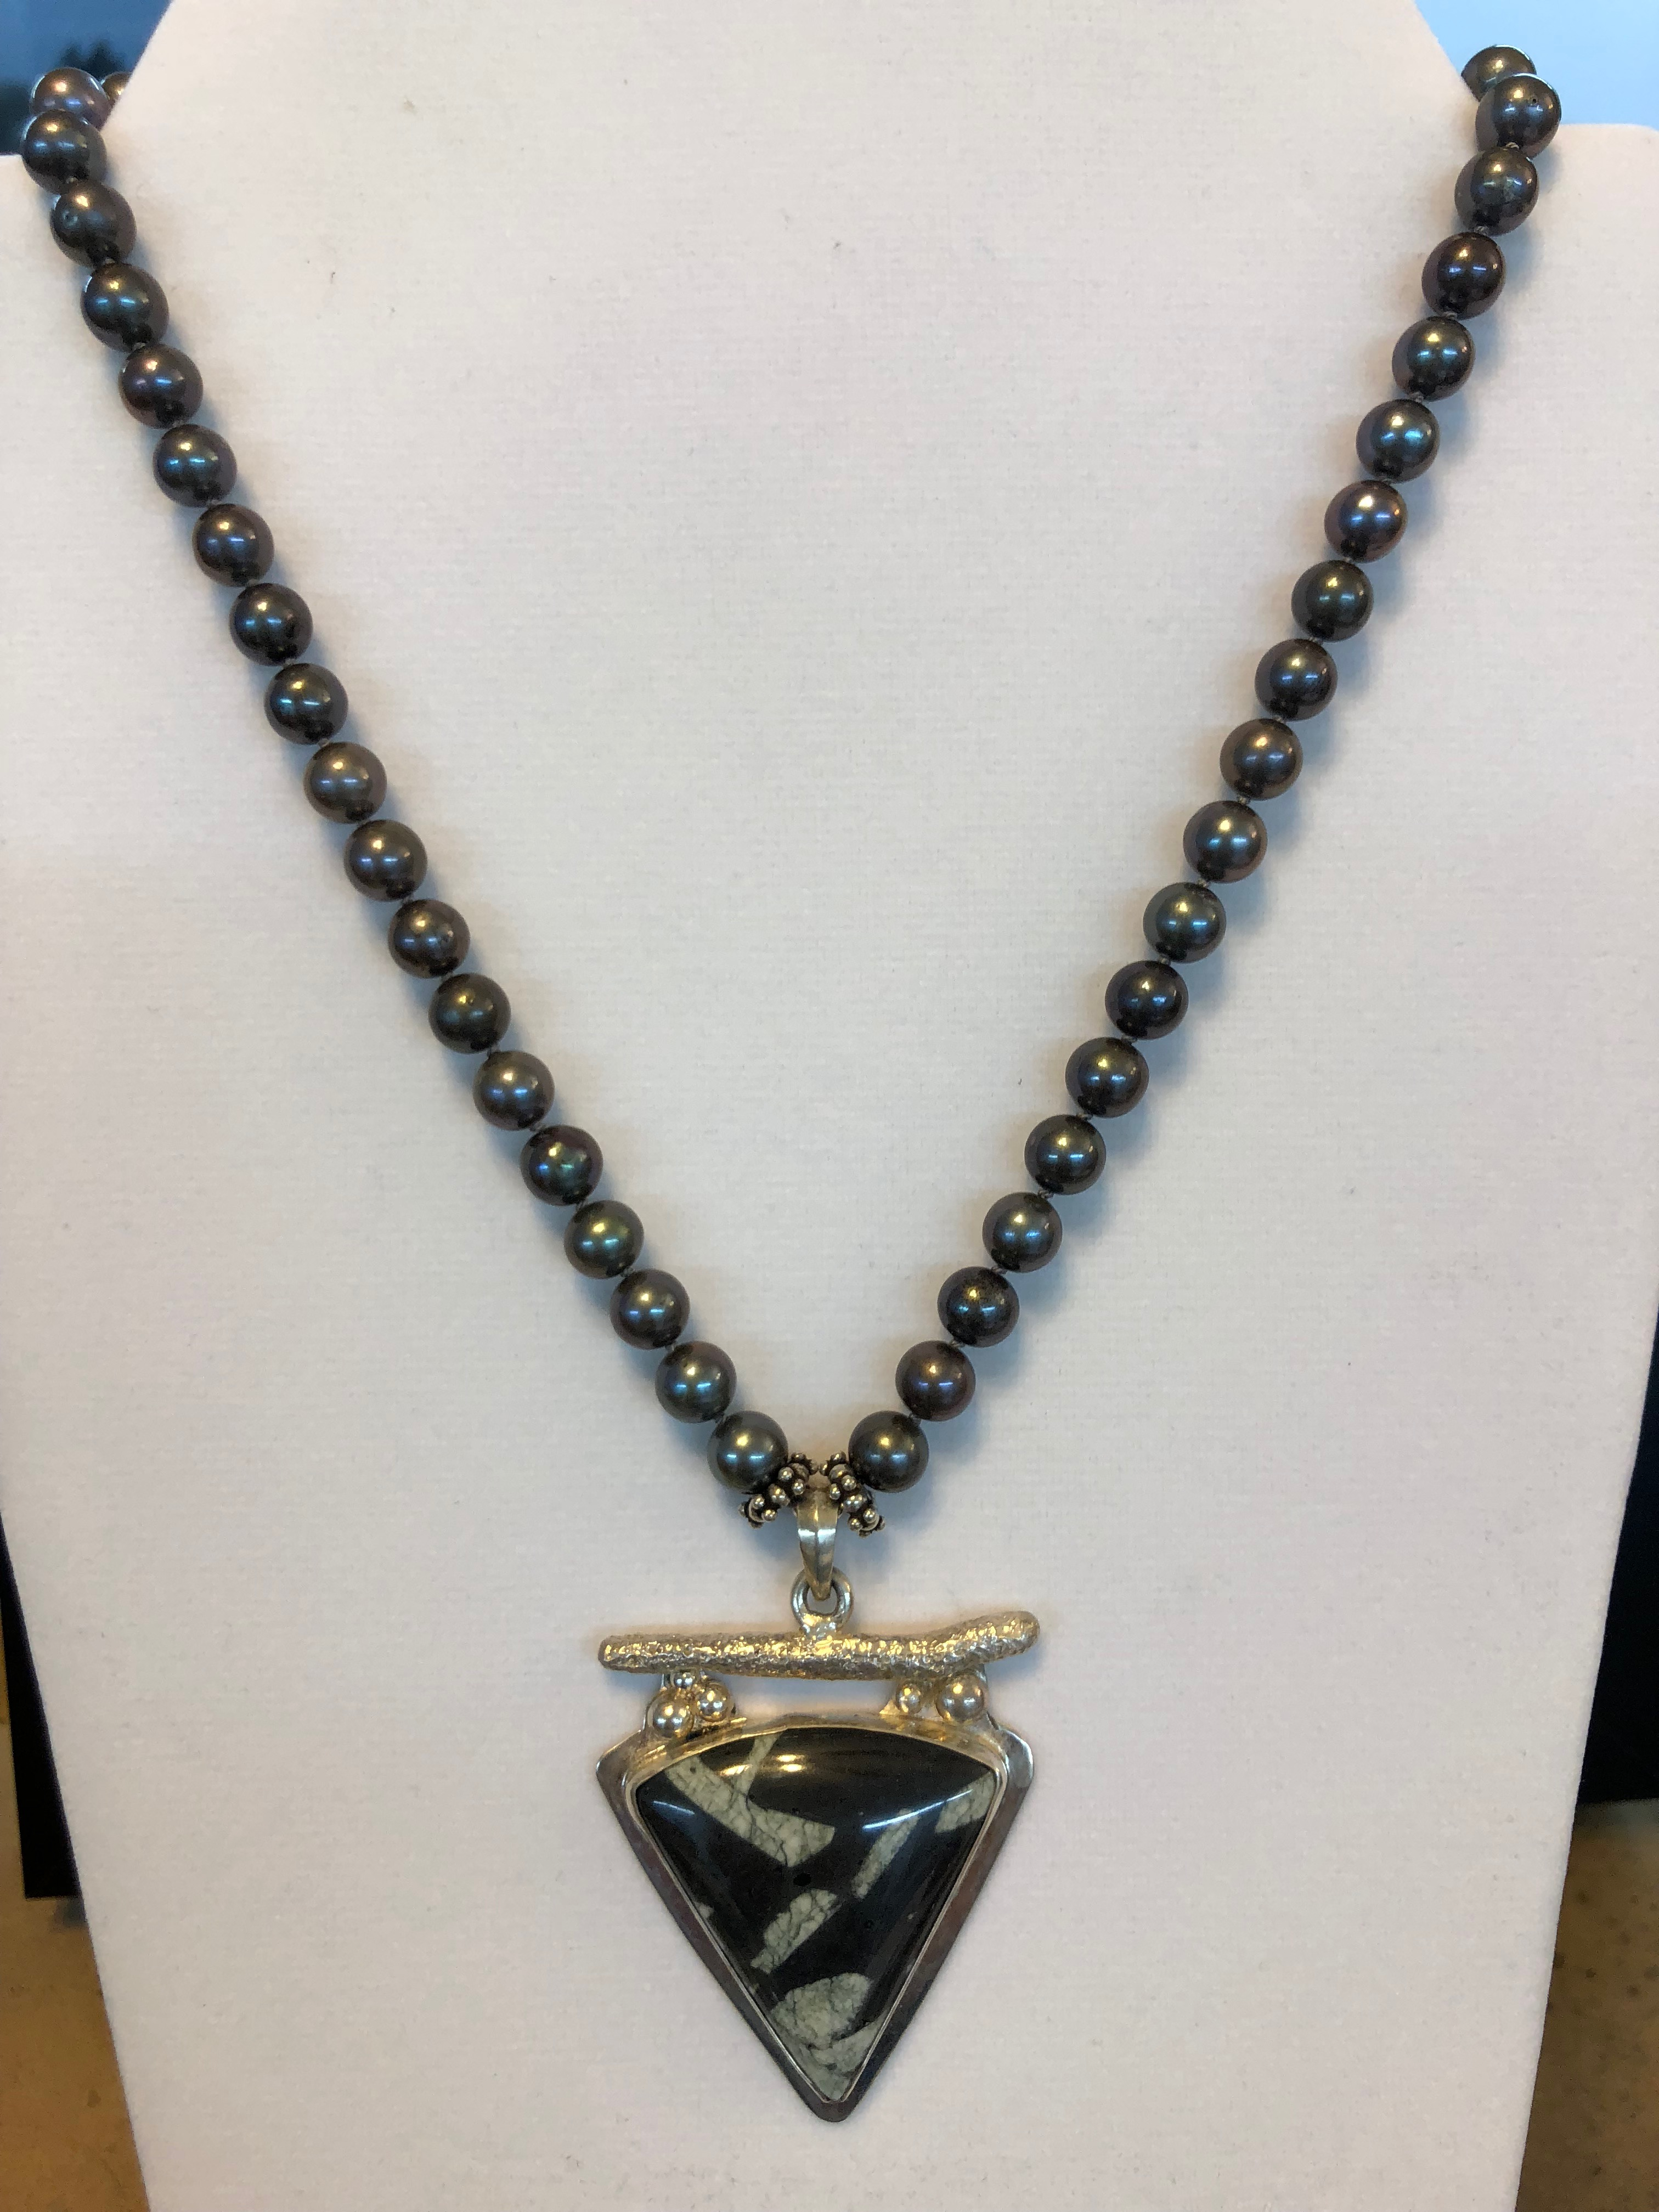 Sterling Silver Necklace w/Freshwater Black 8mm Pearls, Chinese Stone Pendant